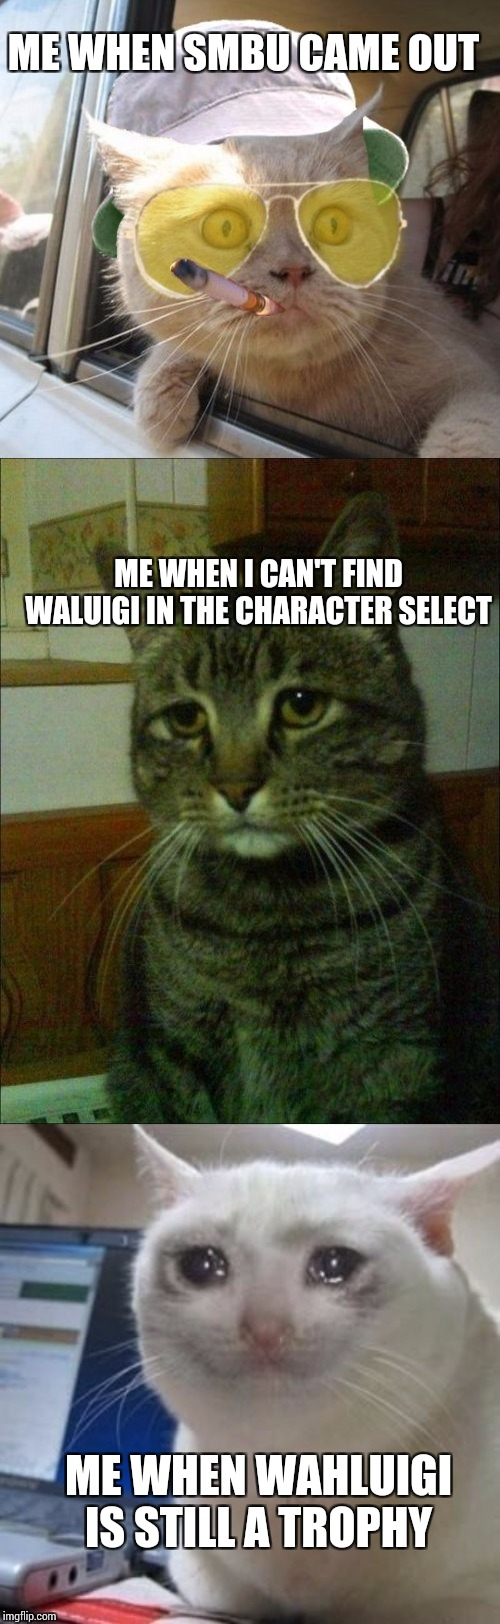 ME WHEN SMBU CAME OUT ME WHEN I CAN'T FIND WALUIGI IN THE CHARACTER SELECT ME WHEN WAHLUIGI IS STILL A TROPHY | image tagged in memes,fear and loathing cat,depressed cat,sad cat tears | made w/ Imgflip meme maker